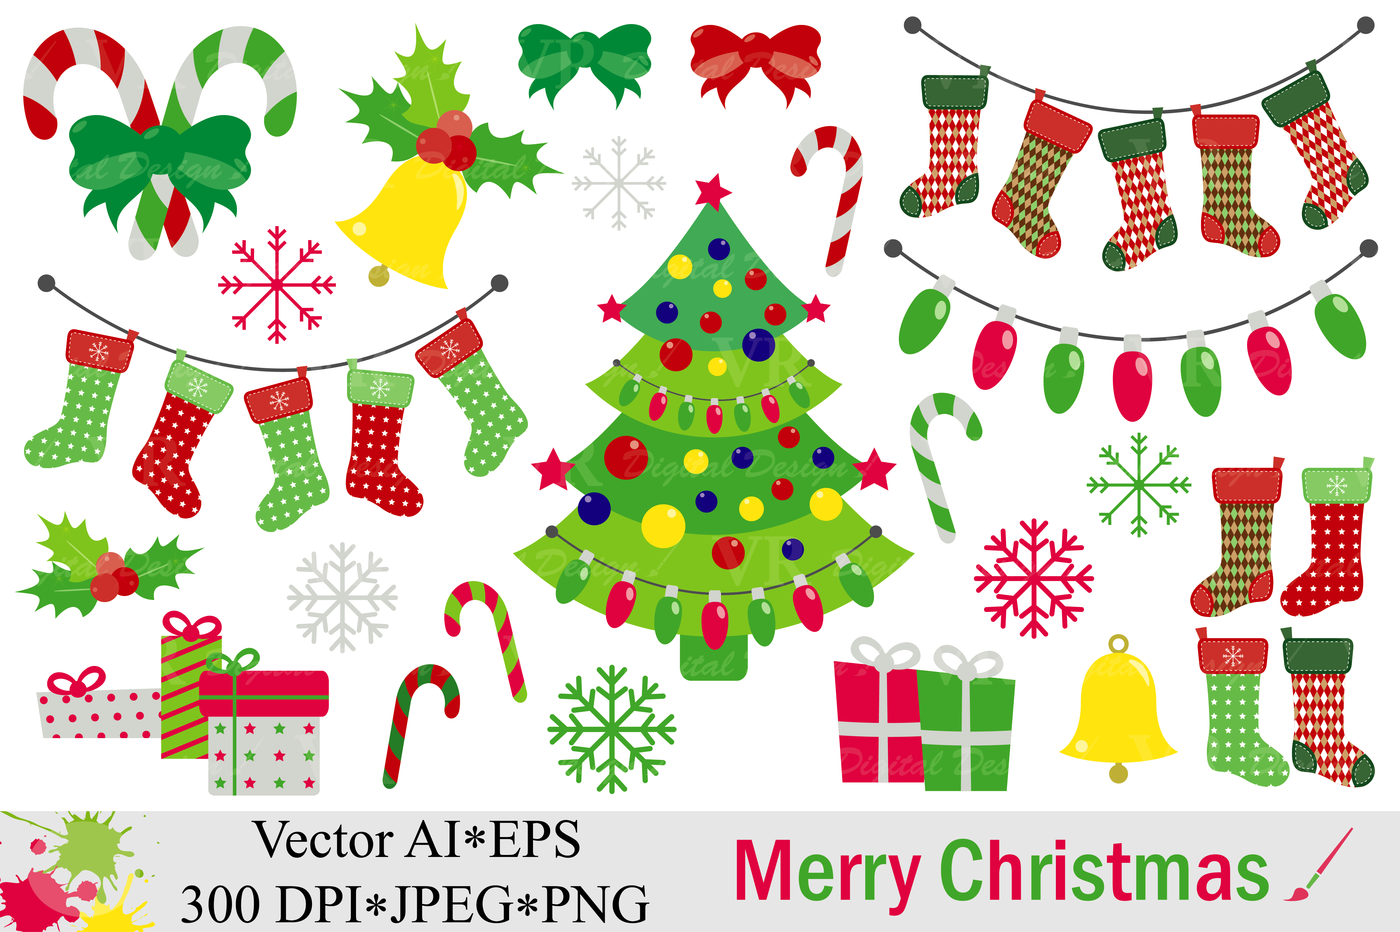 Merry Christmas Clipart Vector By Vr Digital Design